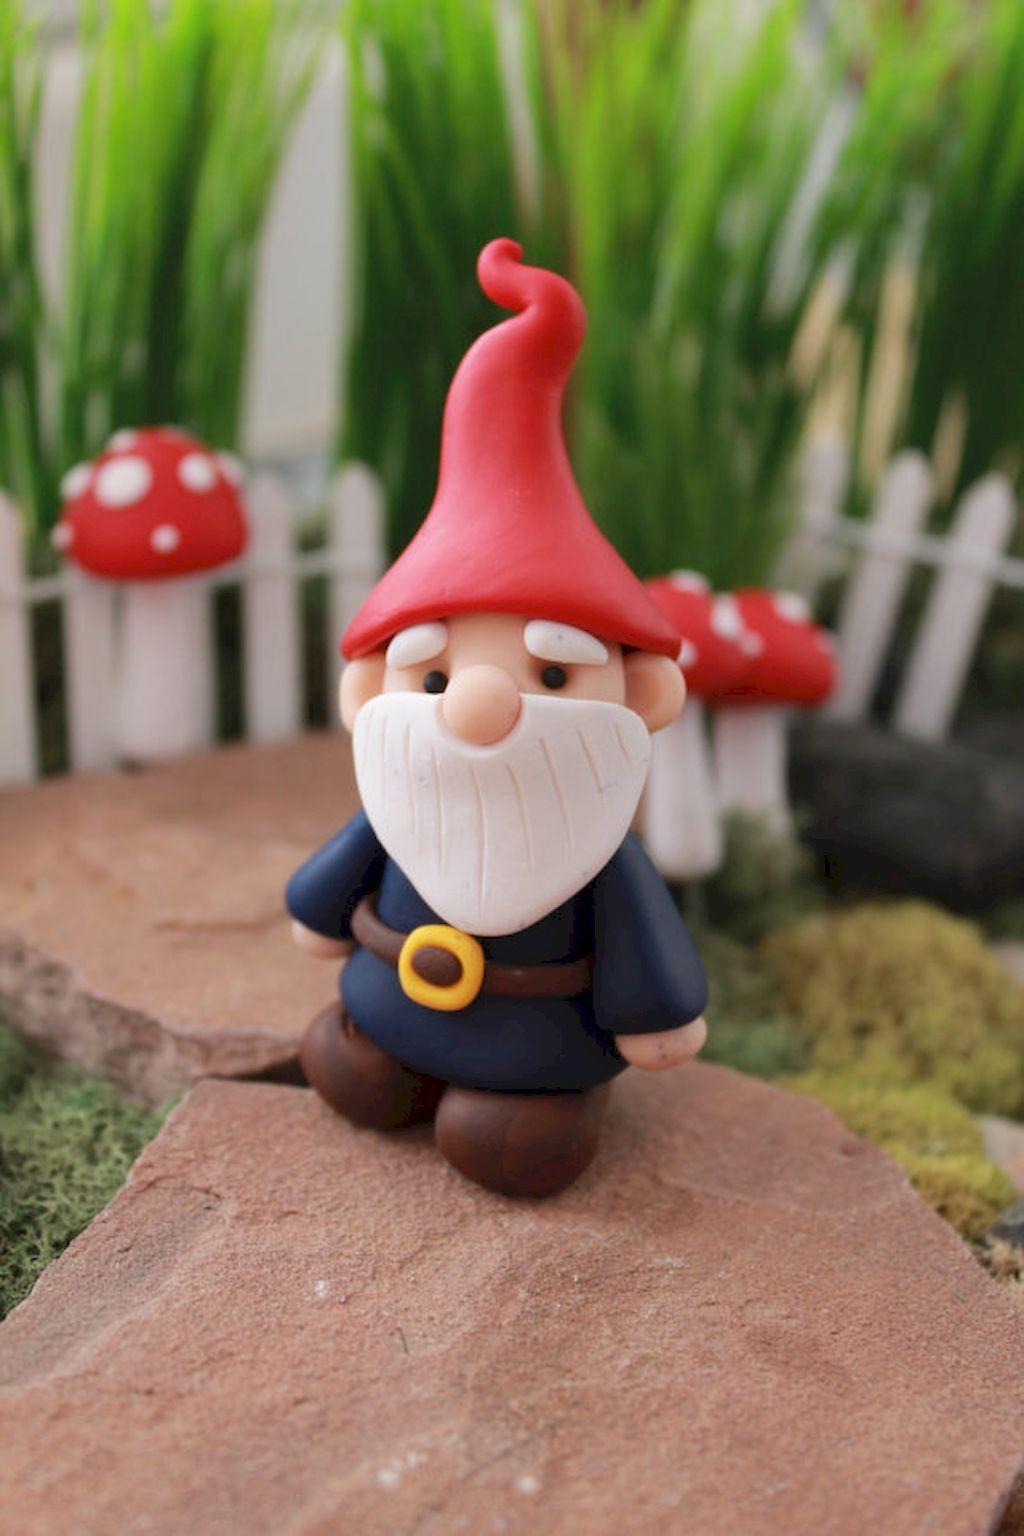 Engaging Easy To Try Diy Polymer Clay Fairy Garden Ideas Easy To Try Diy Polymer Clay Fairy Garden Ideas Polymer Miniature Gnome Garden Ideas garden Miniature Gnome Garden Ideas